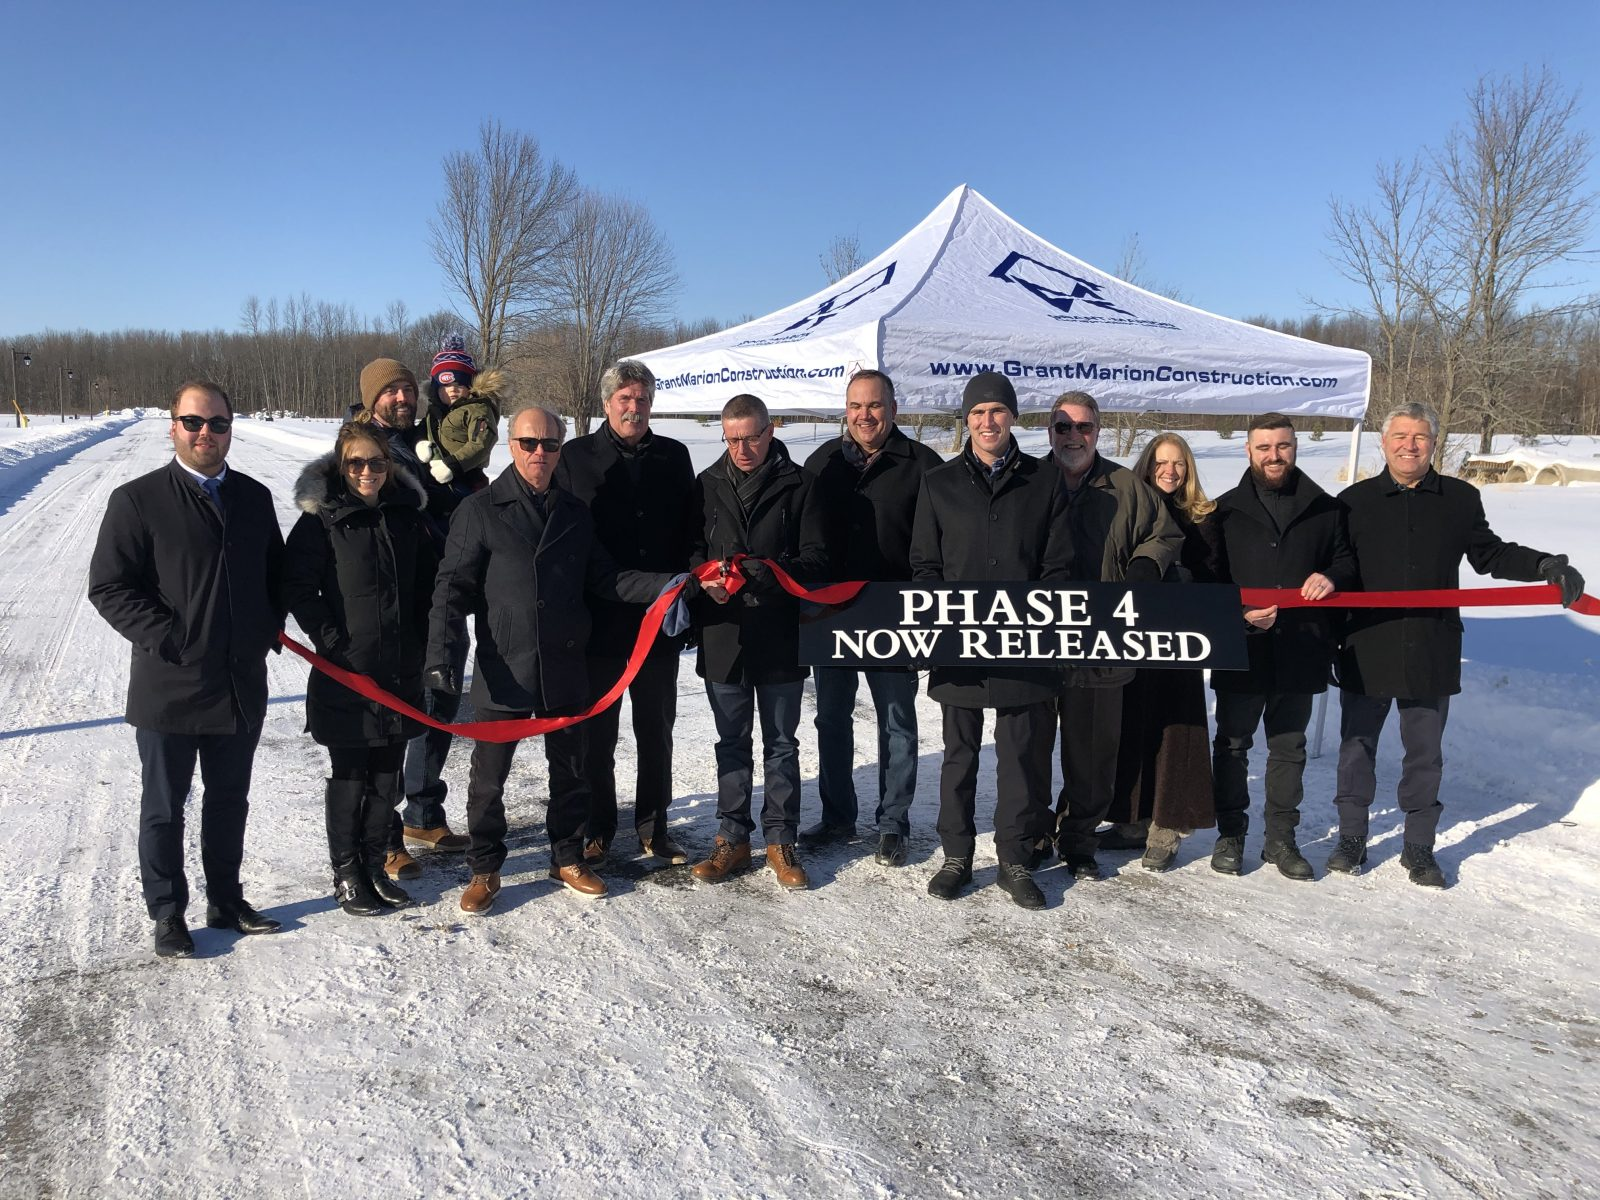 Place St. Laurent enters new phase of expansion